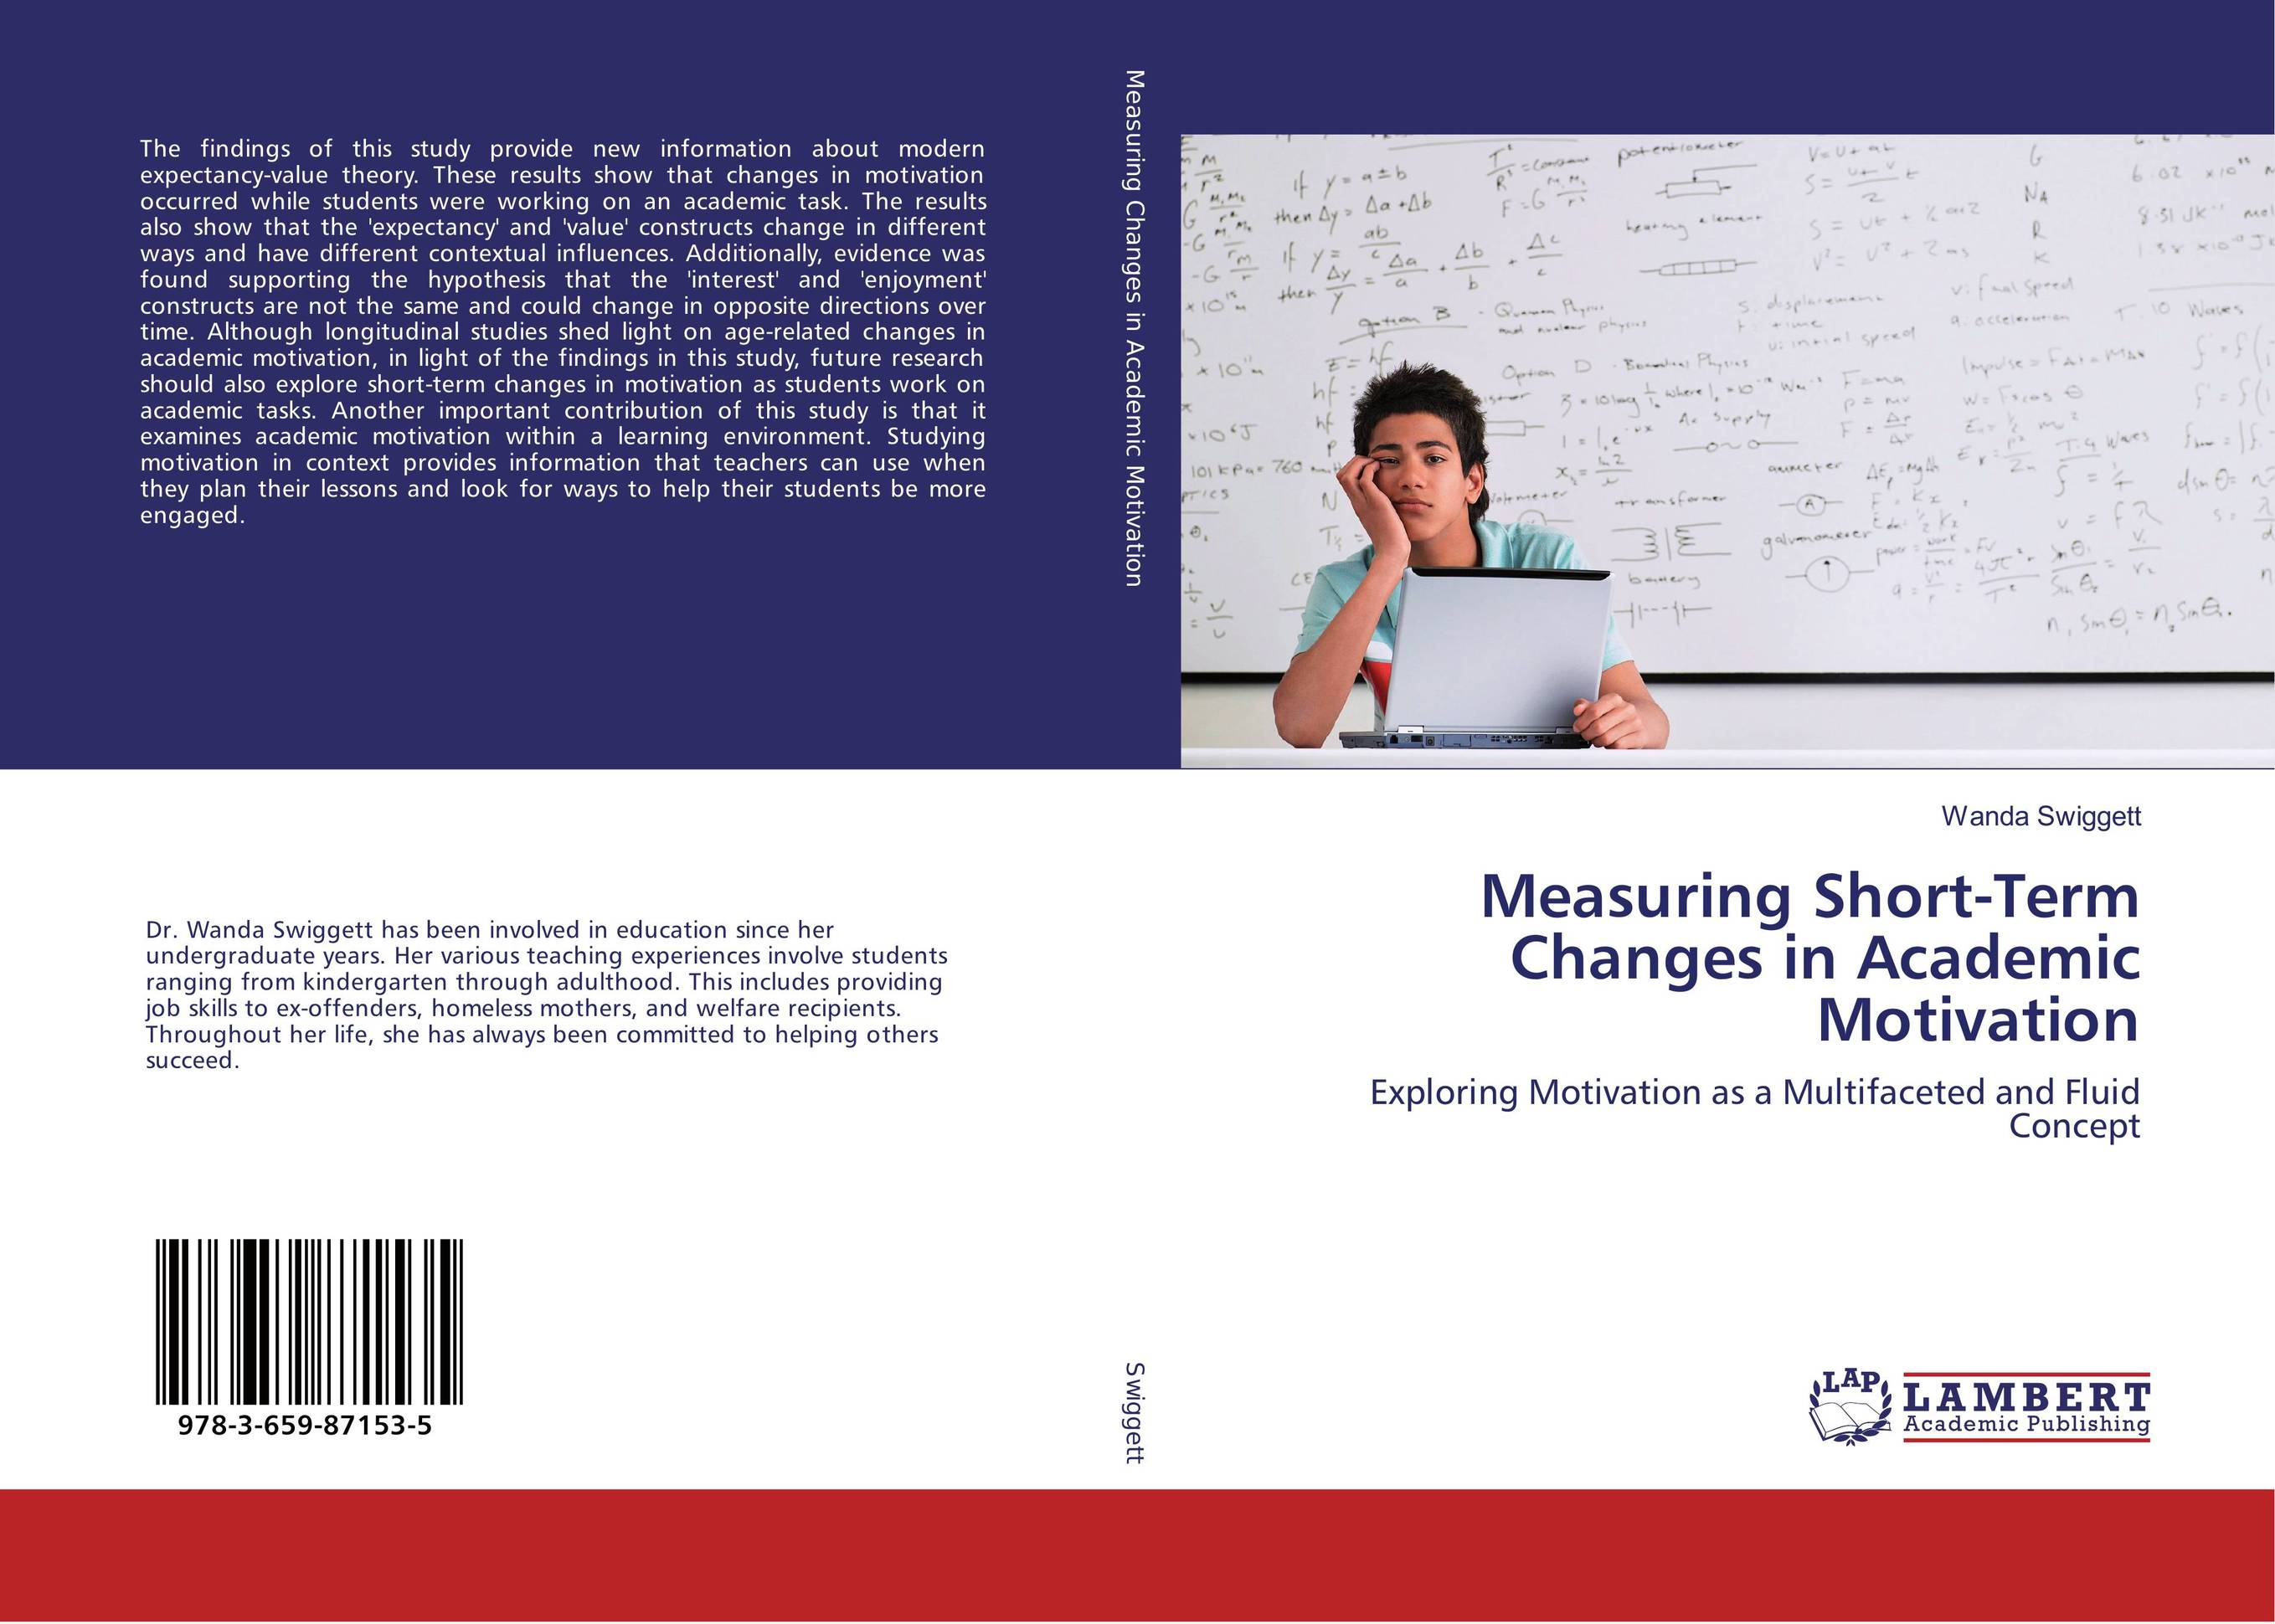 thesis on motivation and academic performance Academic performance asdsdsacademic achievement or (academic) performance is the outcome of education — the extent to which a student, teacher or institution has achieved their educational goals.